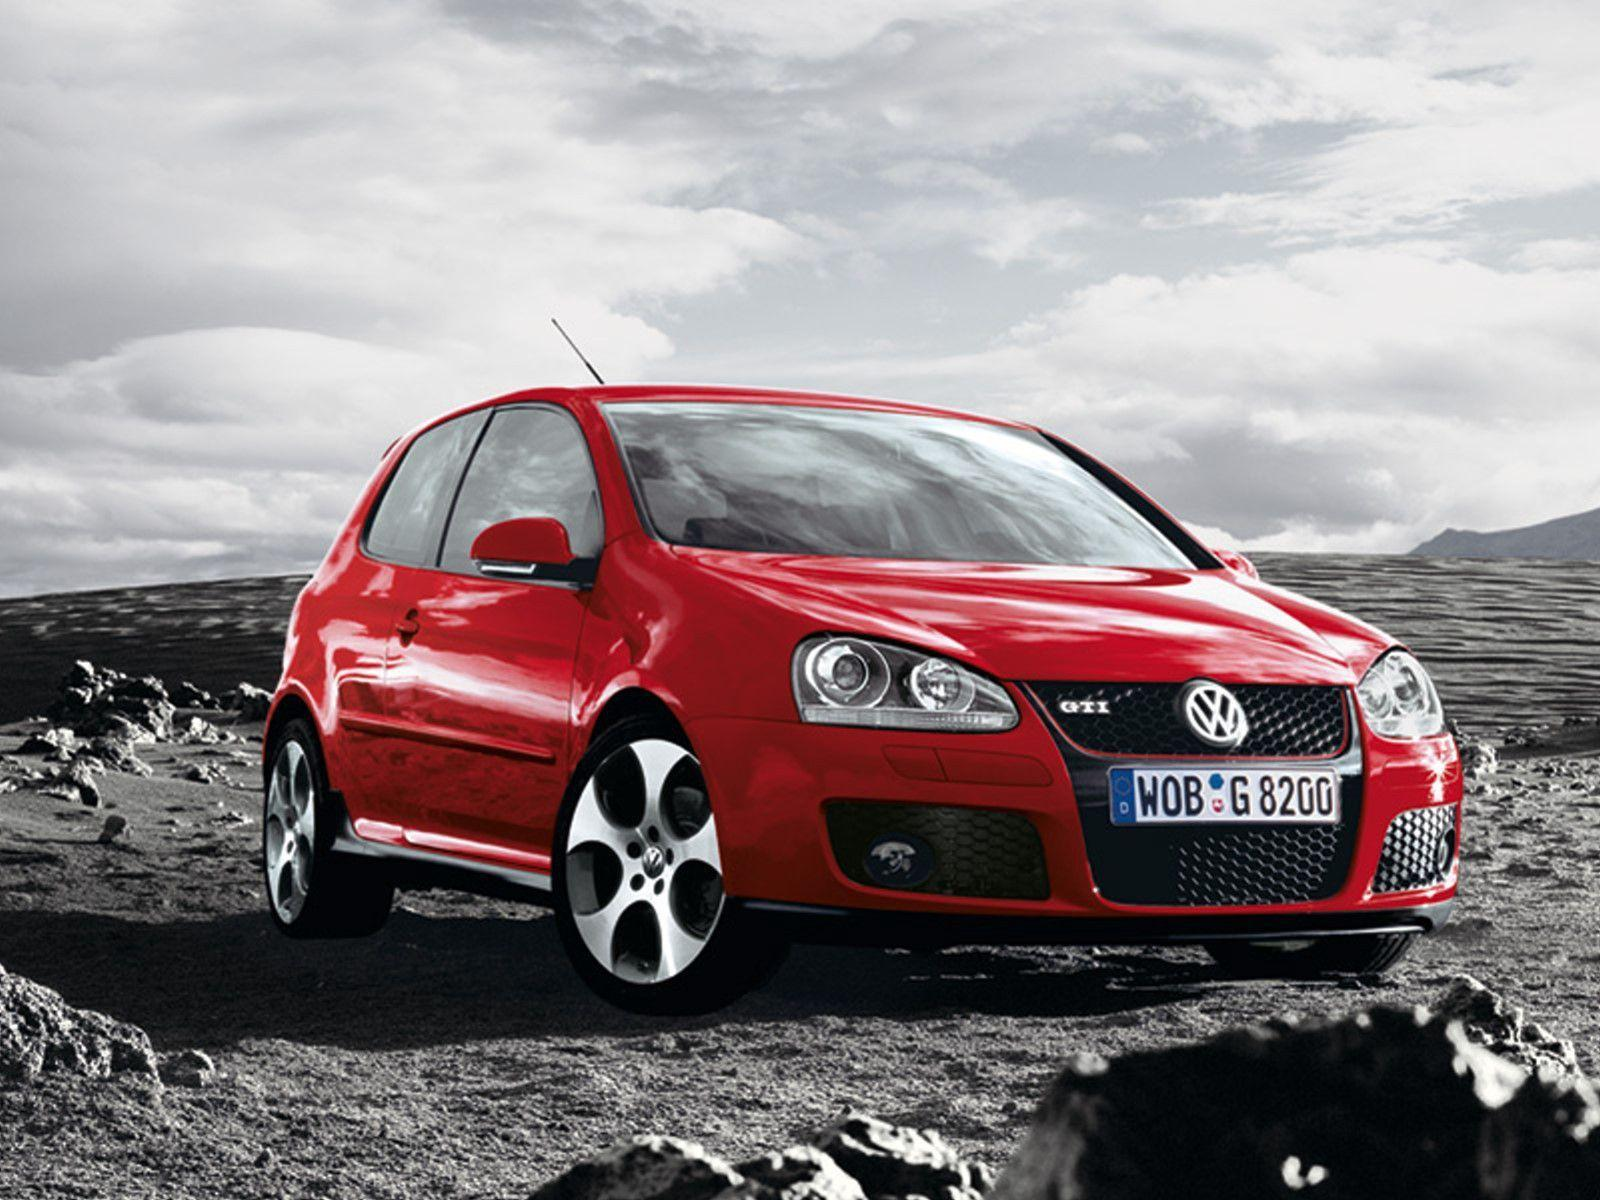 Volkswagen Golf GTI Wallpapers - Wallpaper Cave